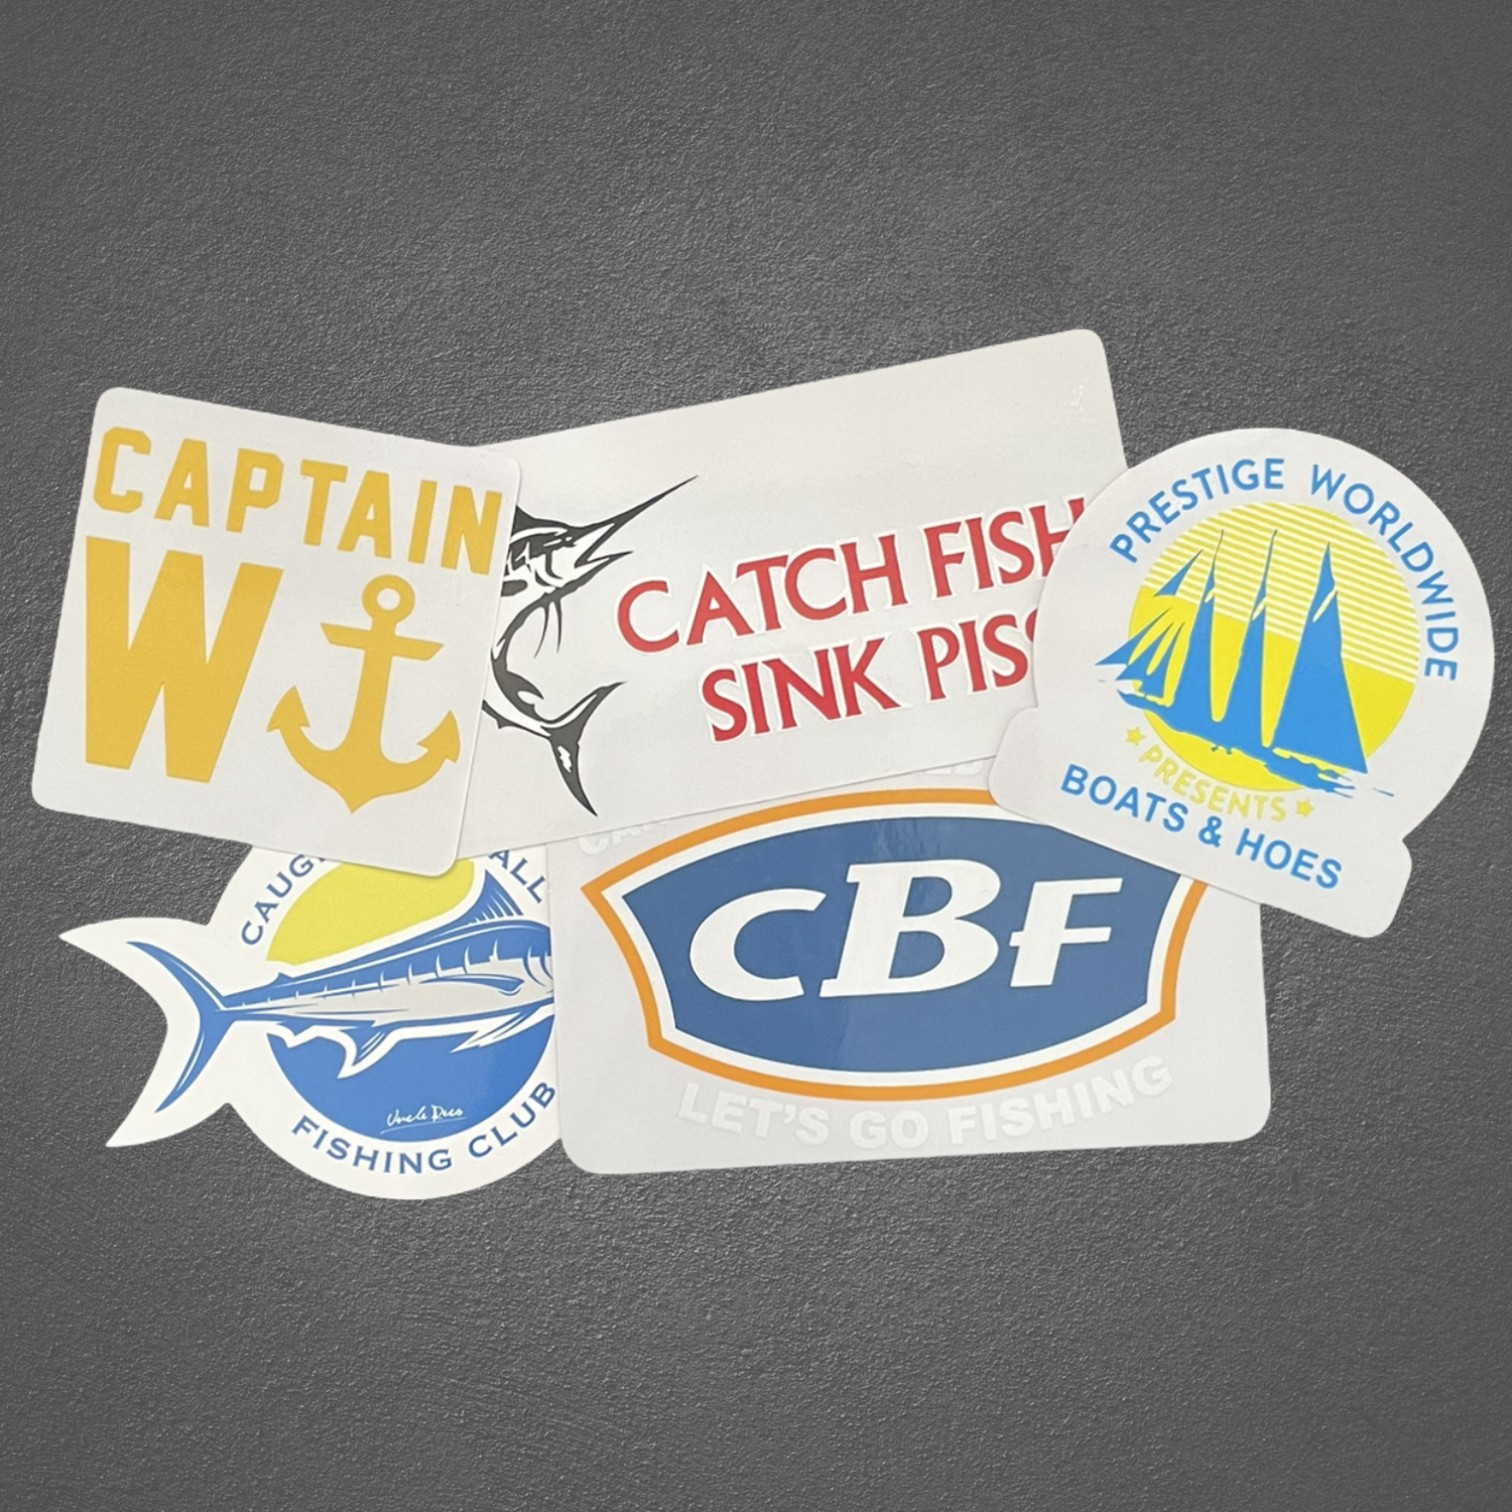 THE BOATING DIE CUT STICKER COMBO